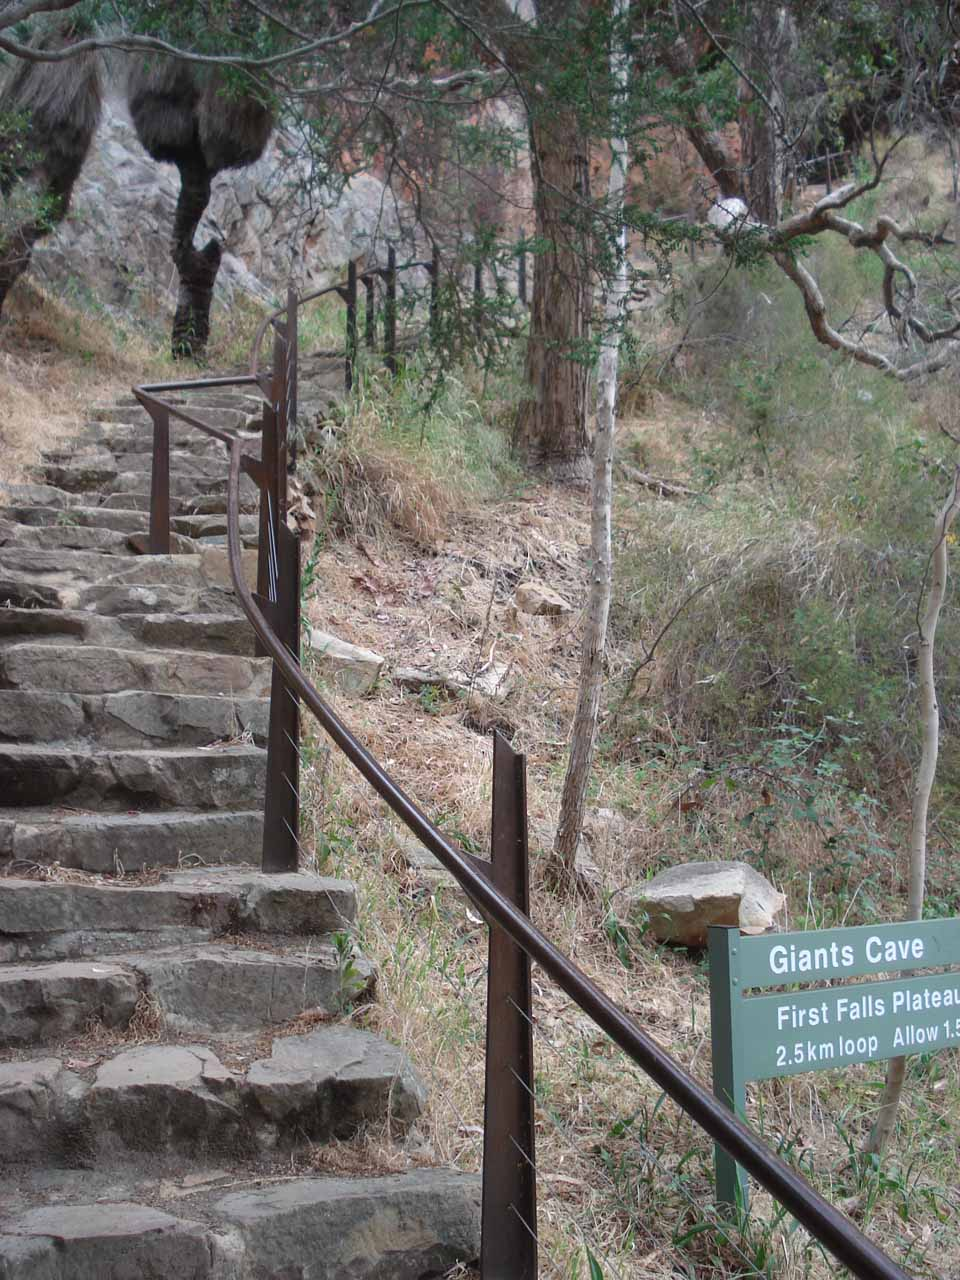 Looking up the steps to the Giants Cave and the First Falls Plateau